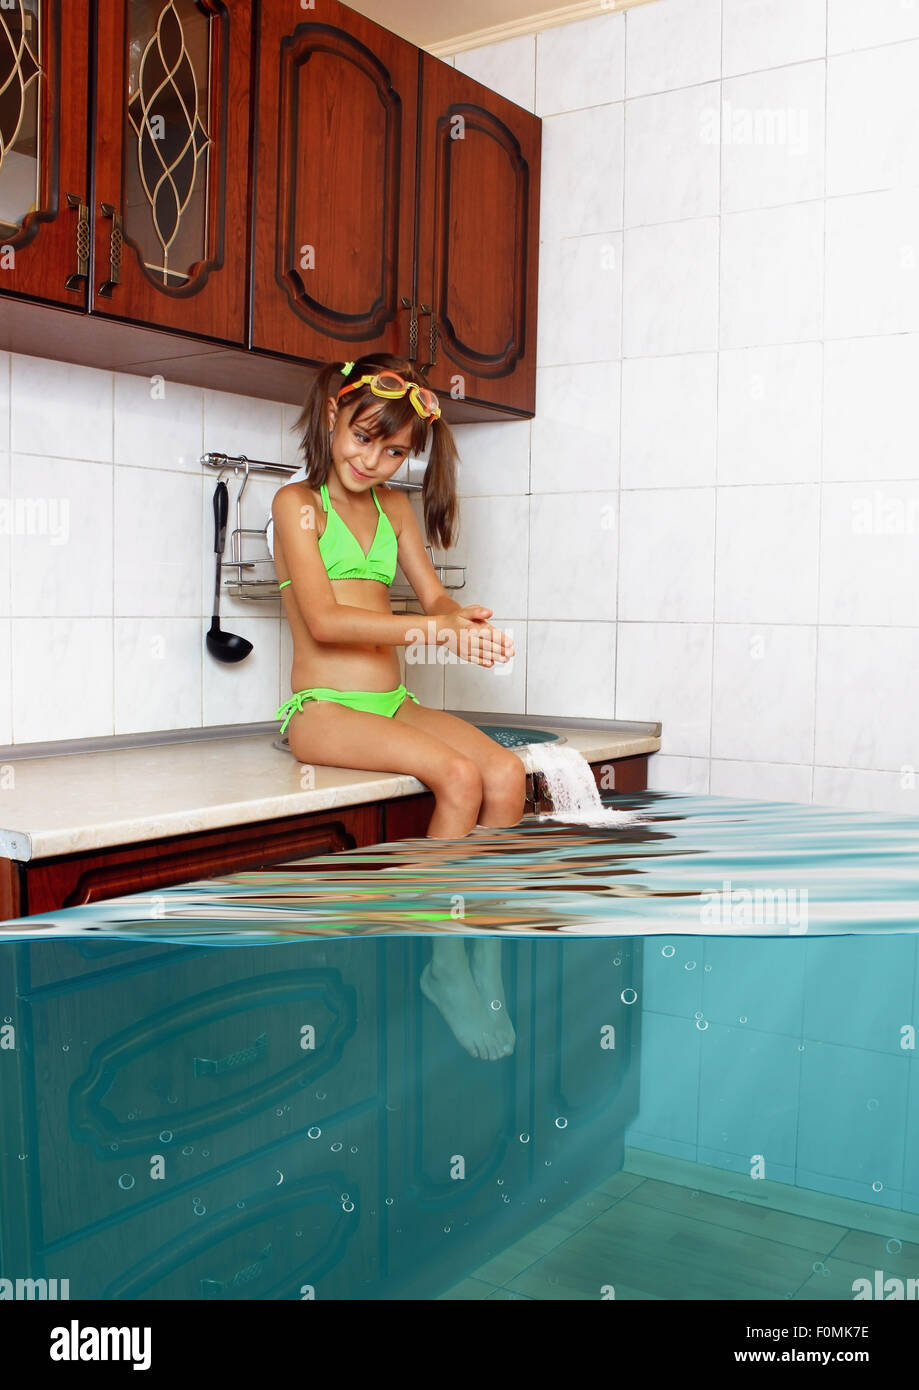 Child girl make mess, flooded kitchen imitating swimming pool, funny concept - Stock Image